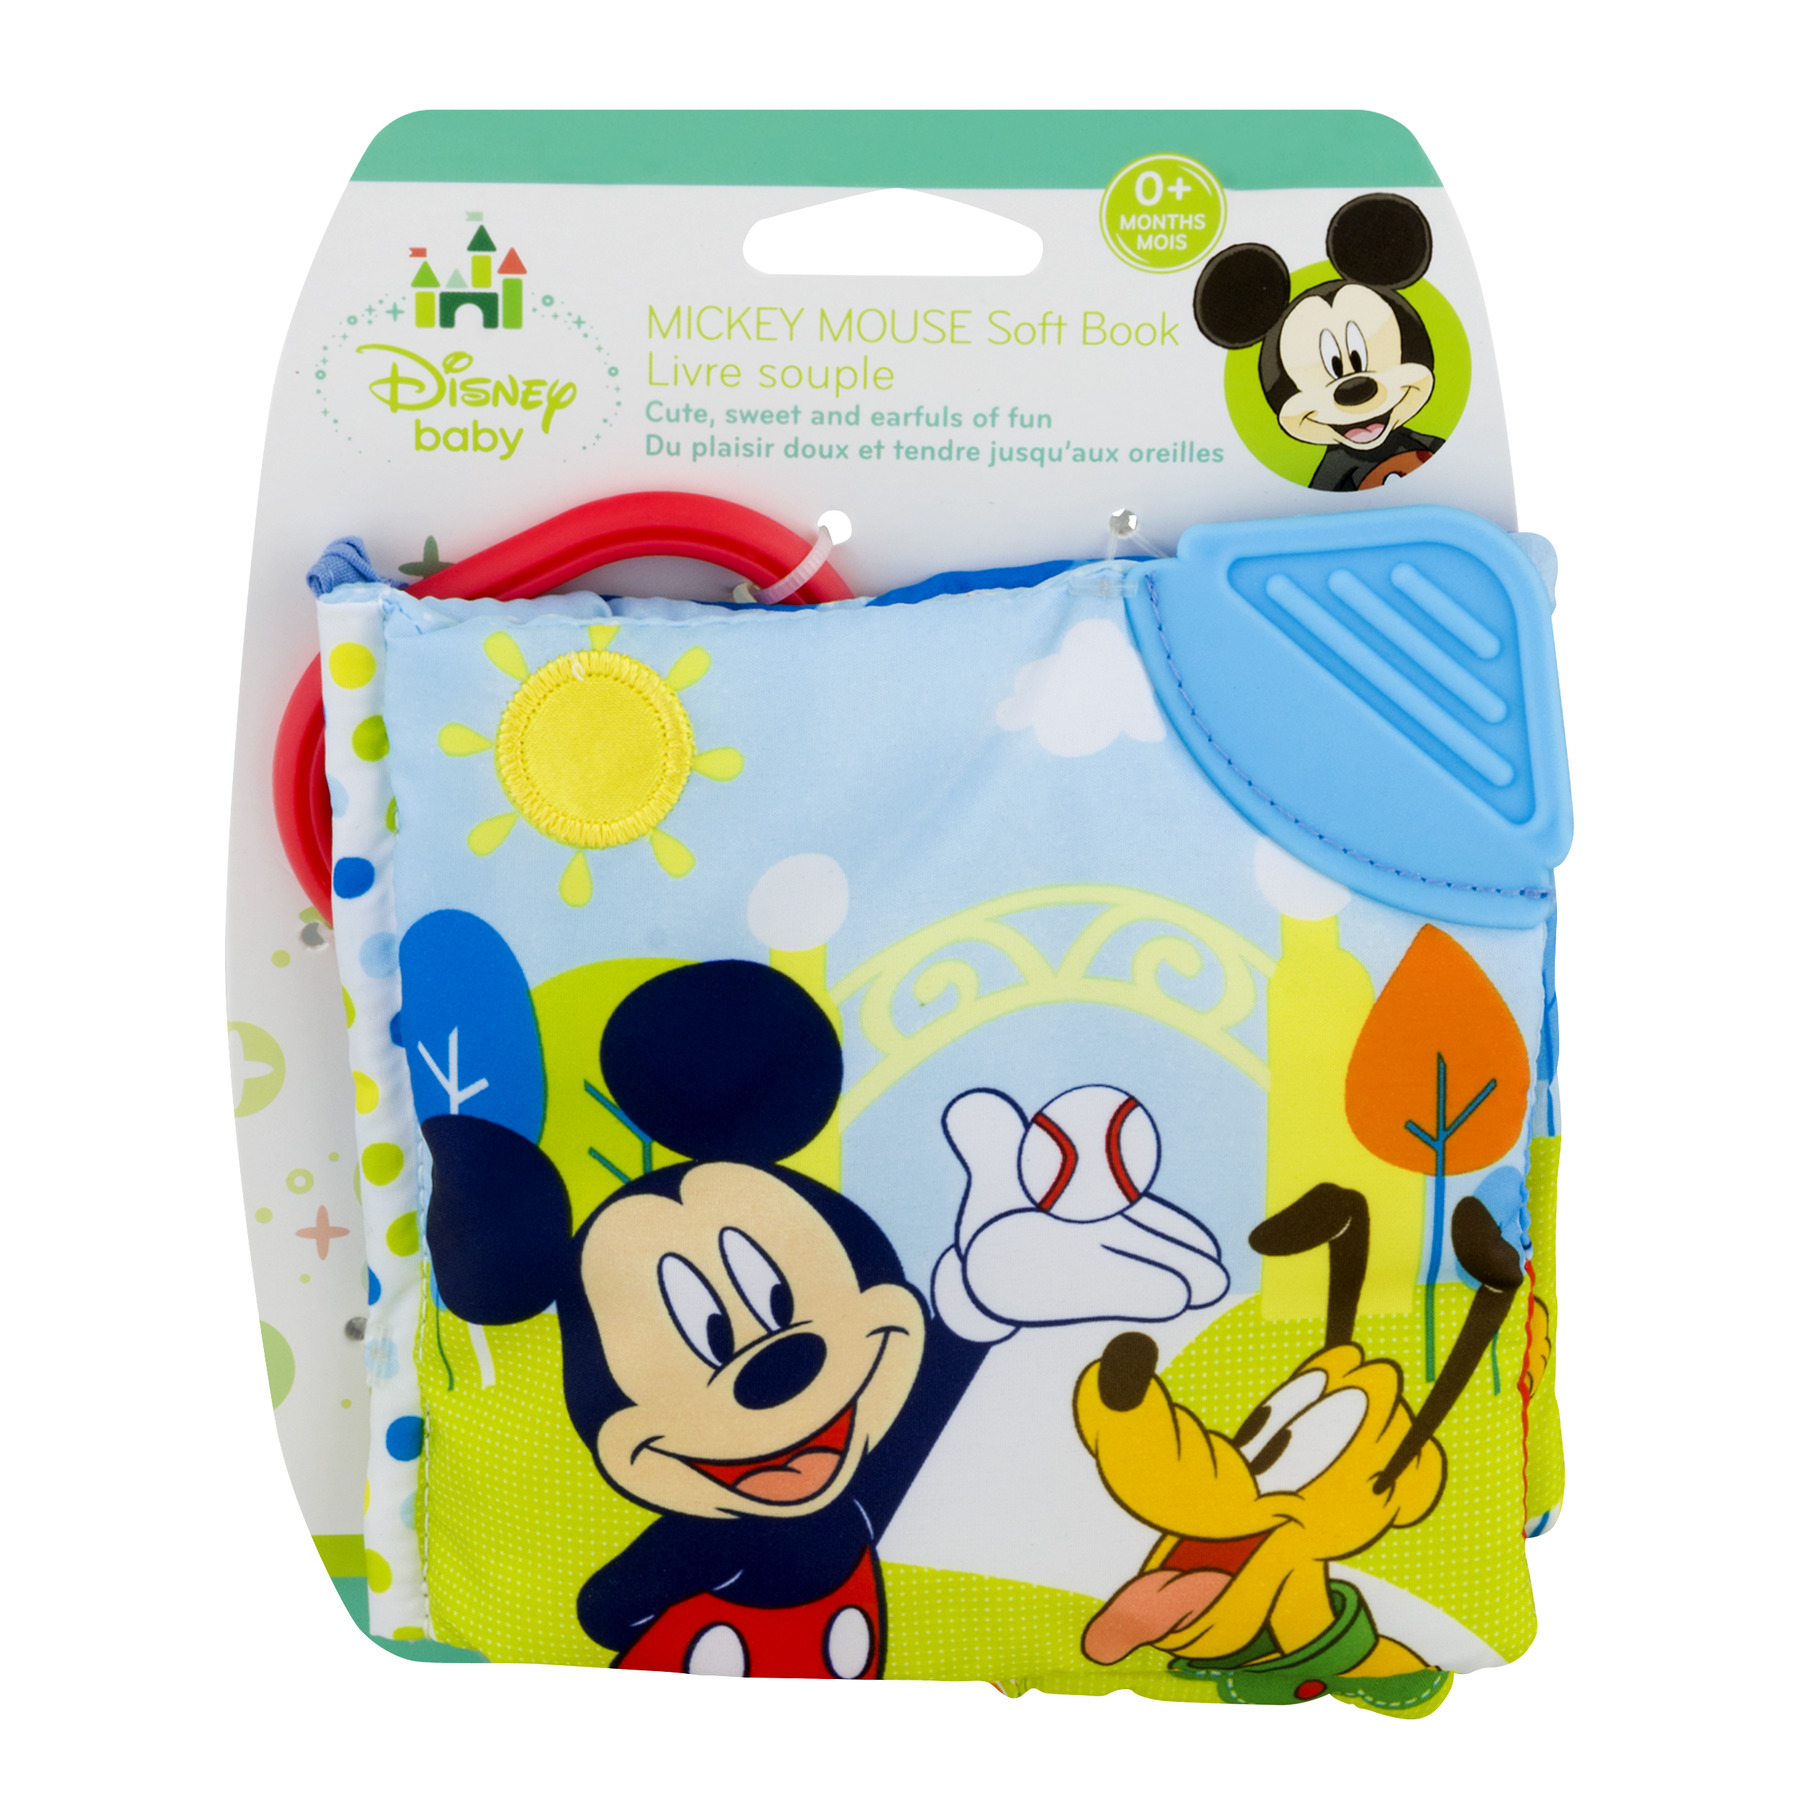 Disney Baby Mickey Mouse Soft Book 0+ Months, 1.0 CT